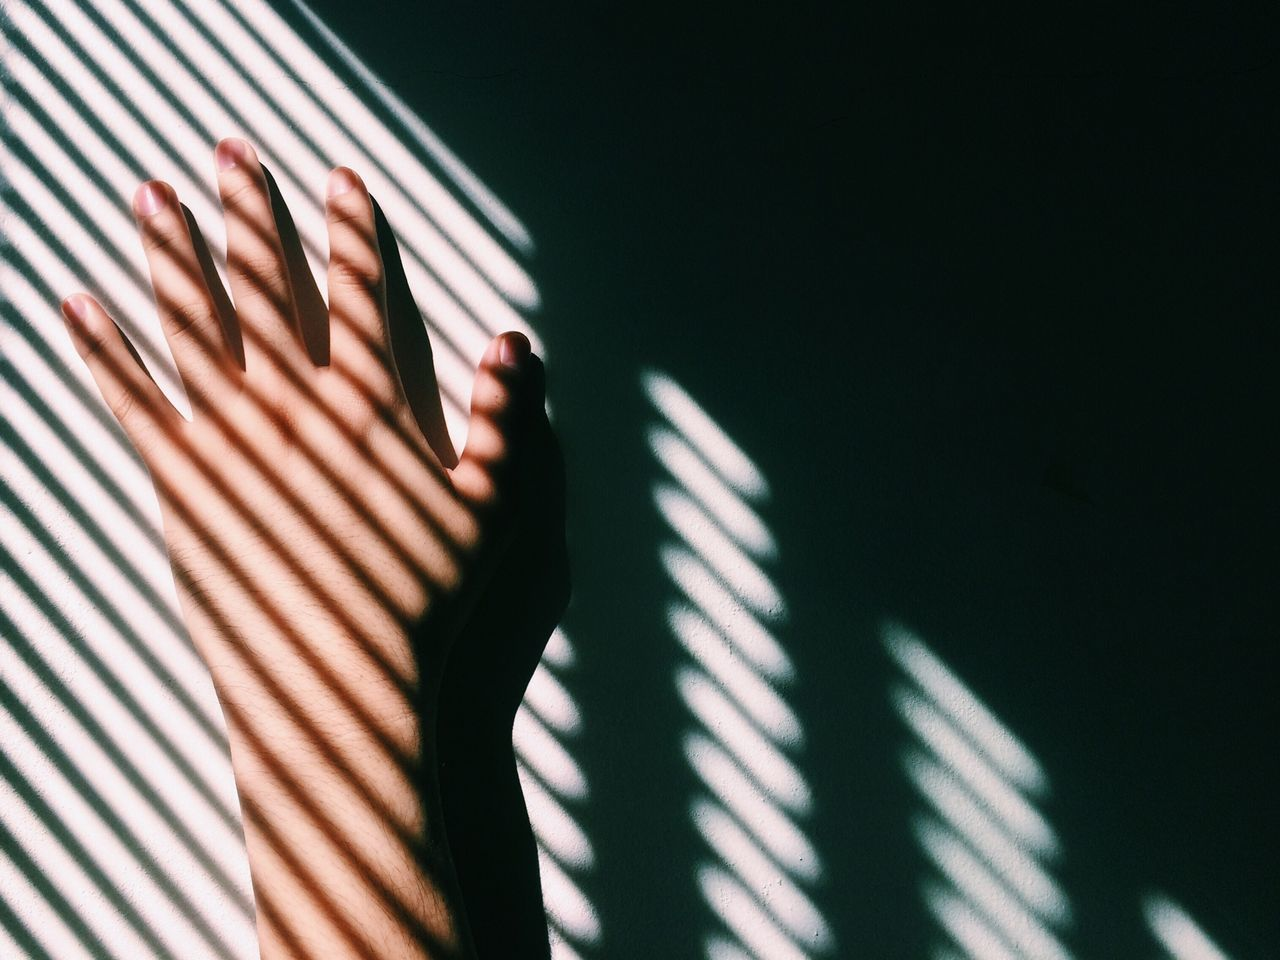 Cropped image of woman hand on wall in shadow pattern